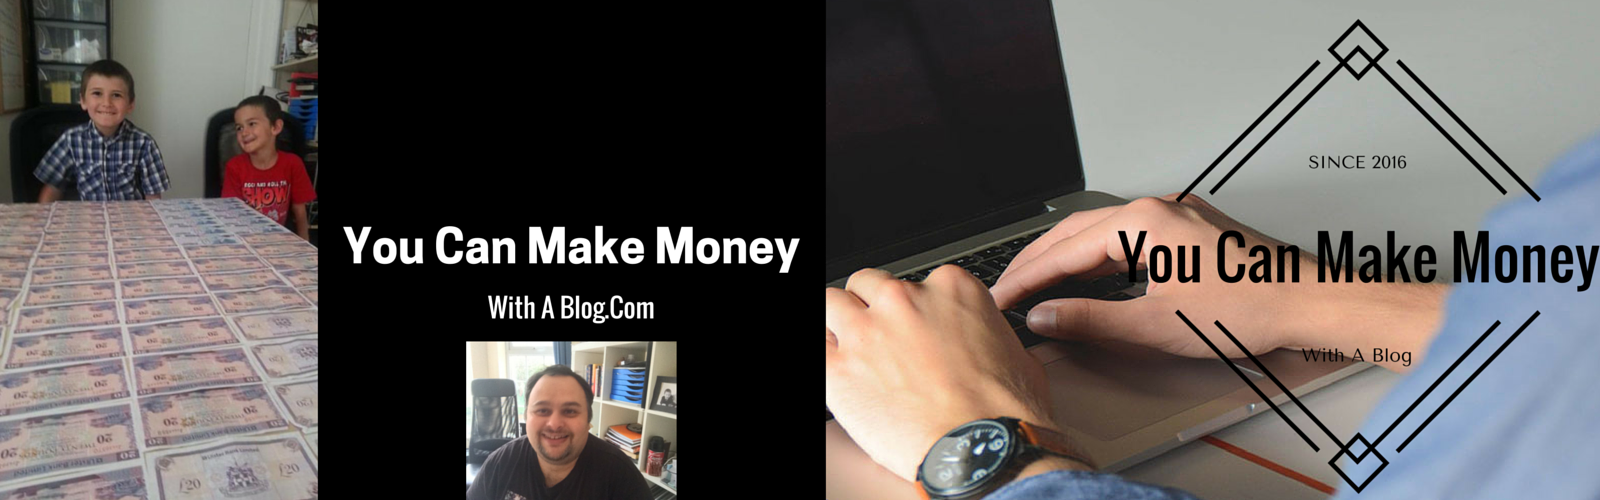 You Can Make Money With A Blog Big Banner